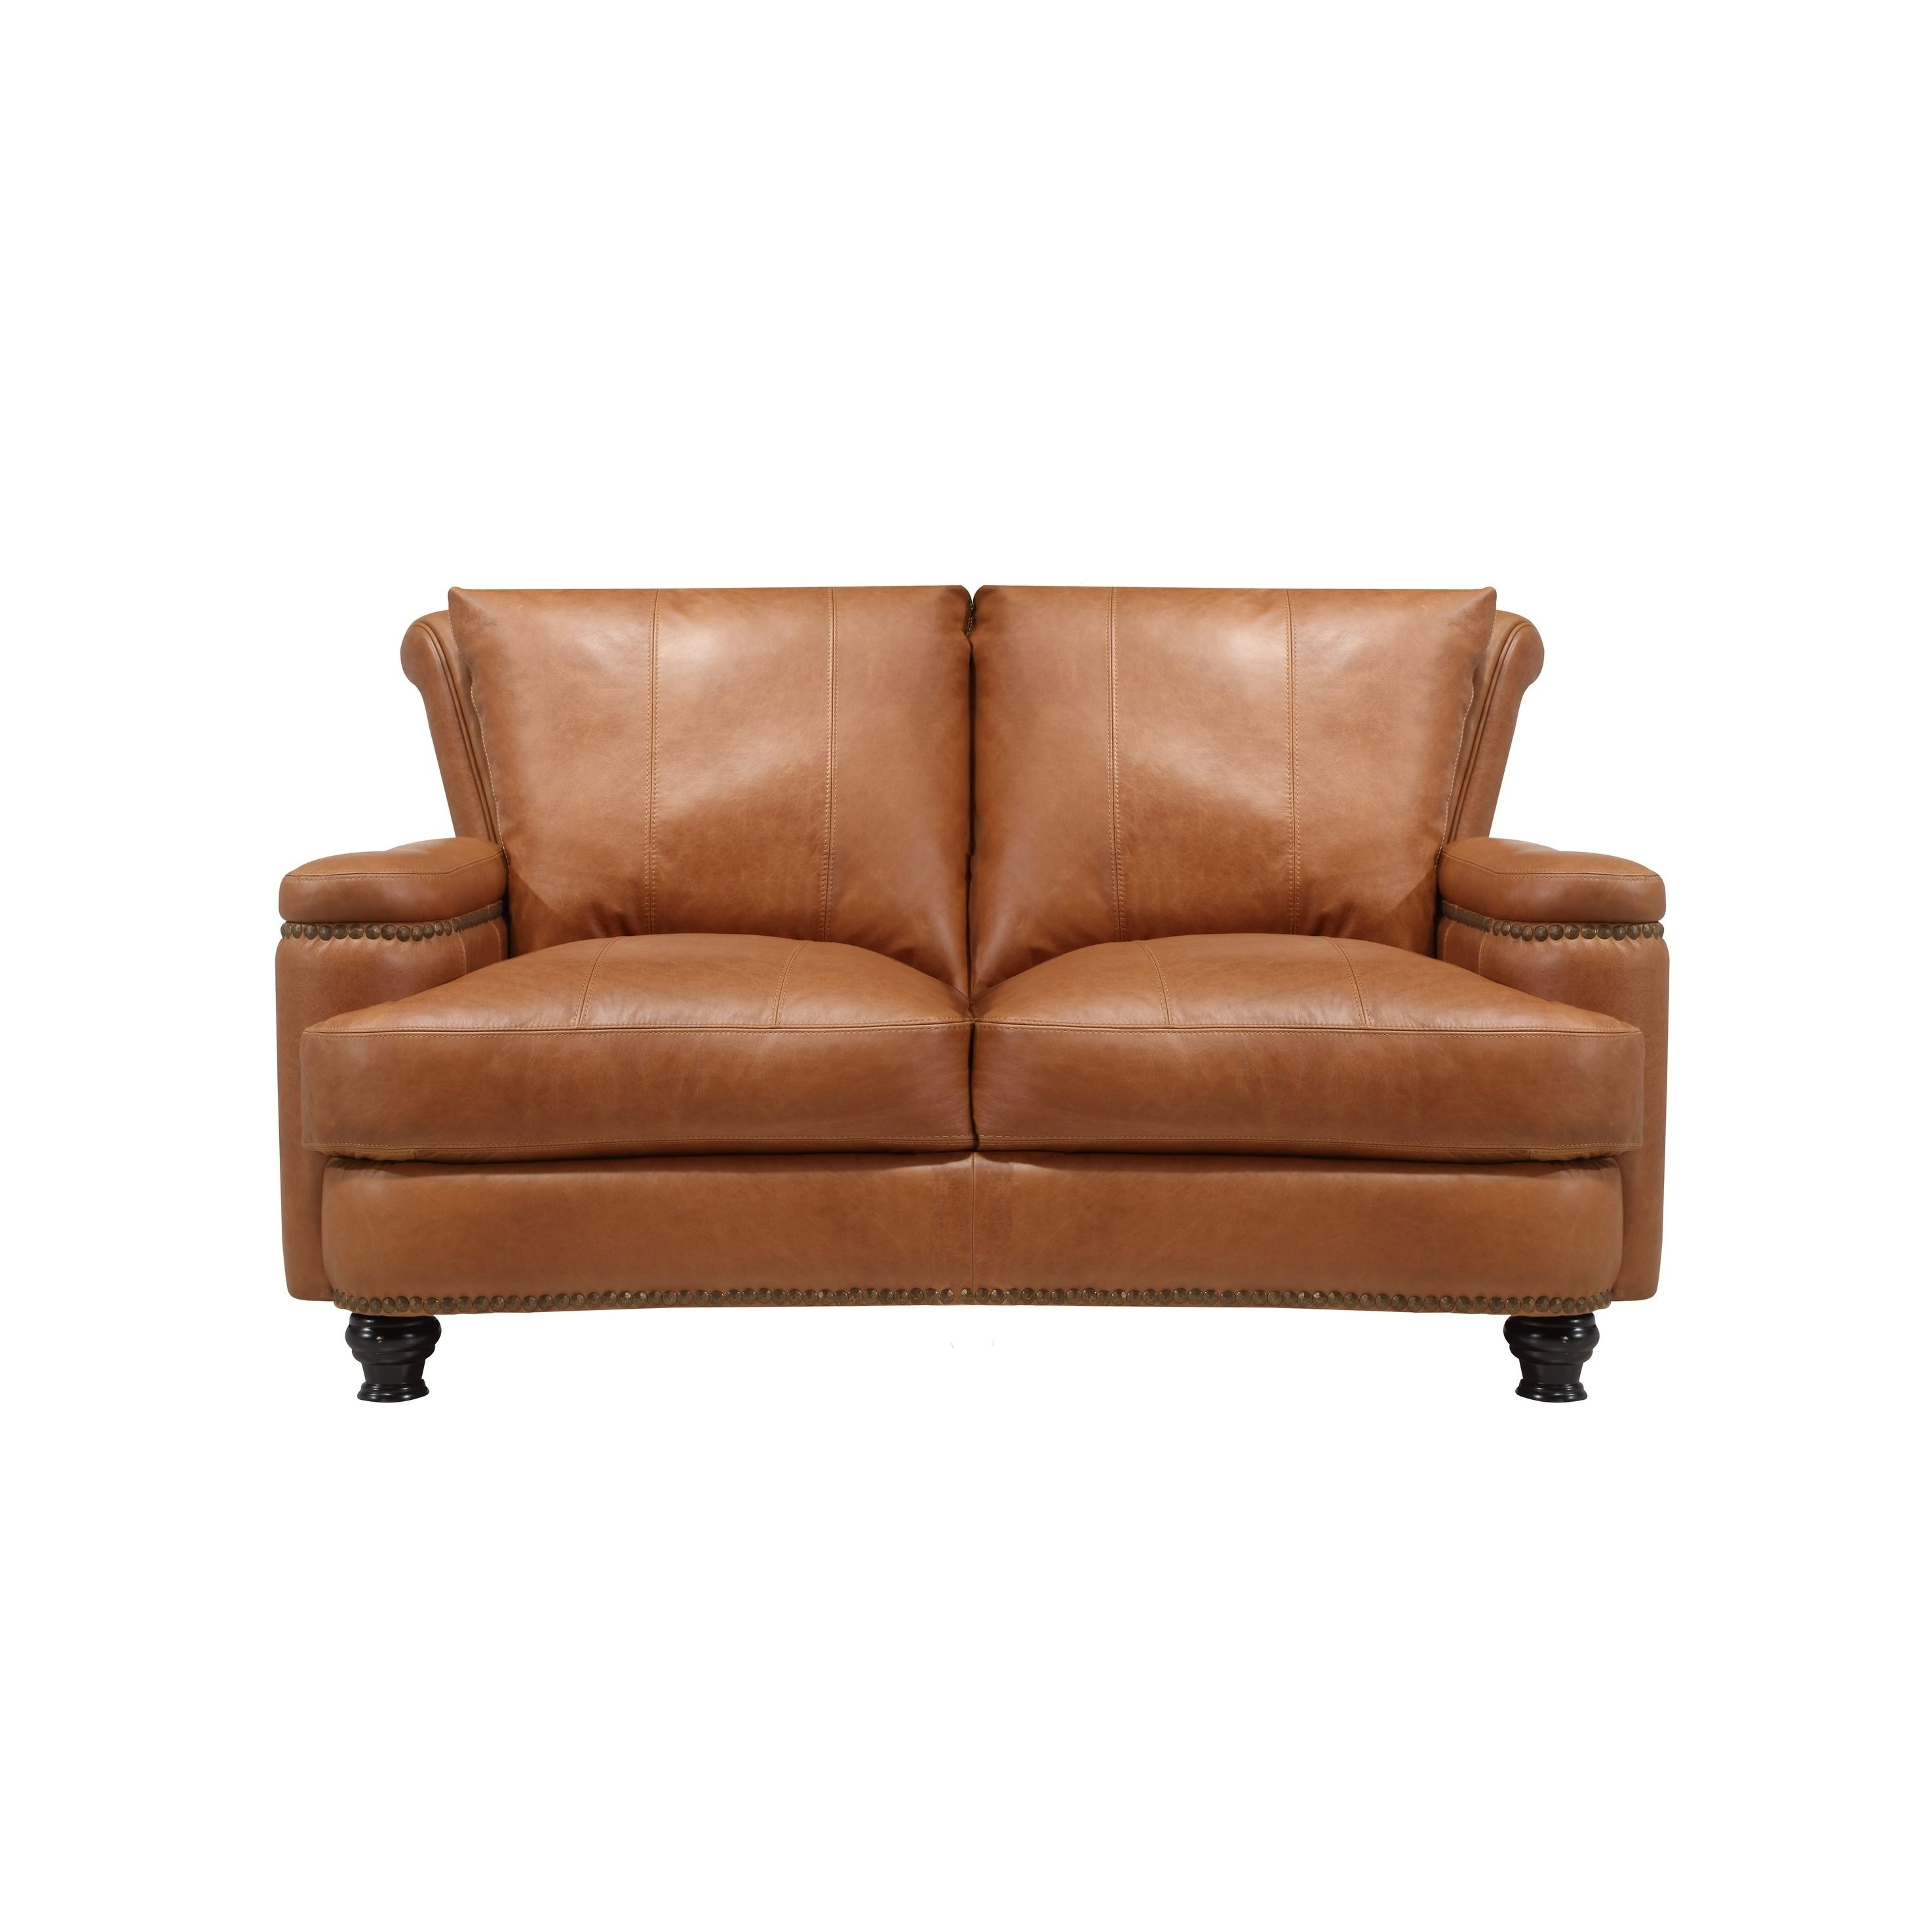 Terrific Nathan Top Grain Italian Leather Loveseat Tan Oliver Caraccident5 Cool Chair Designs And Ideas Caraccident5Info